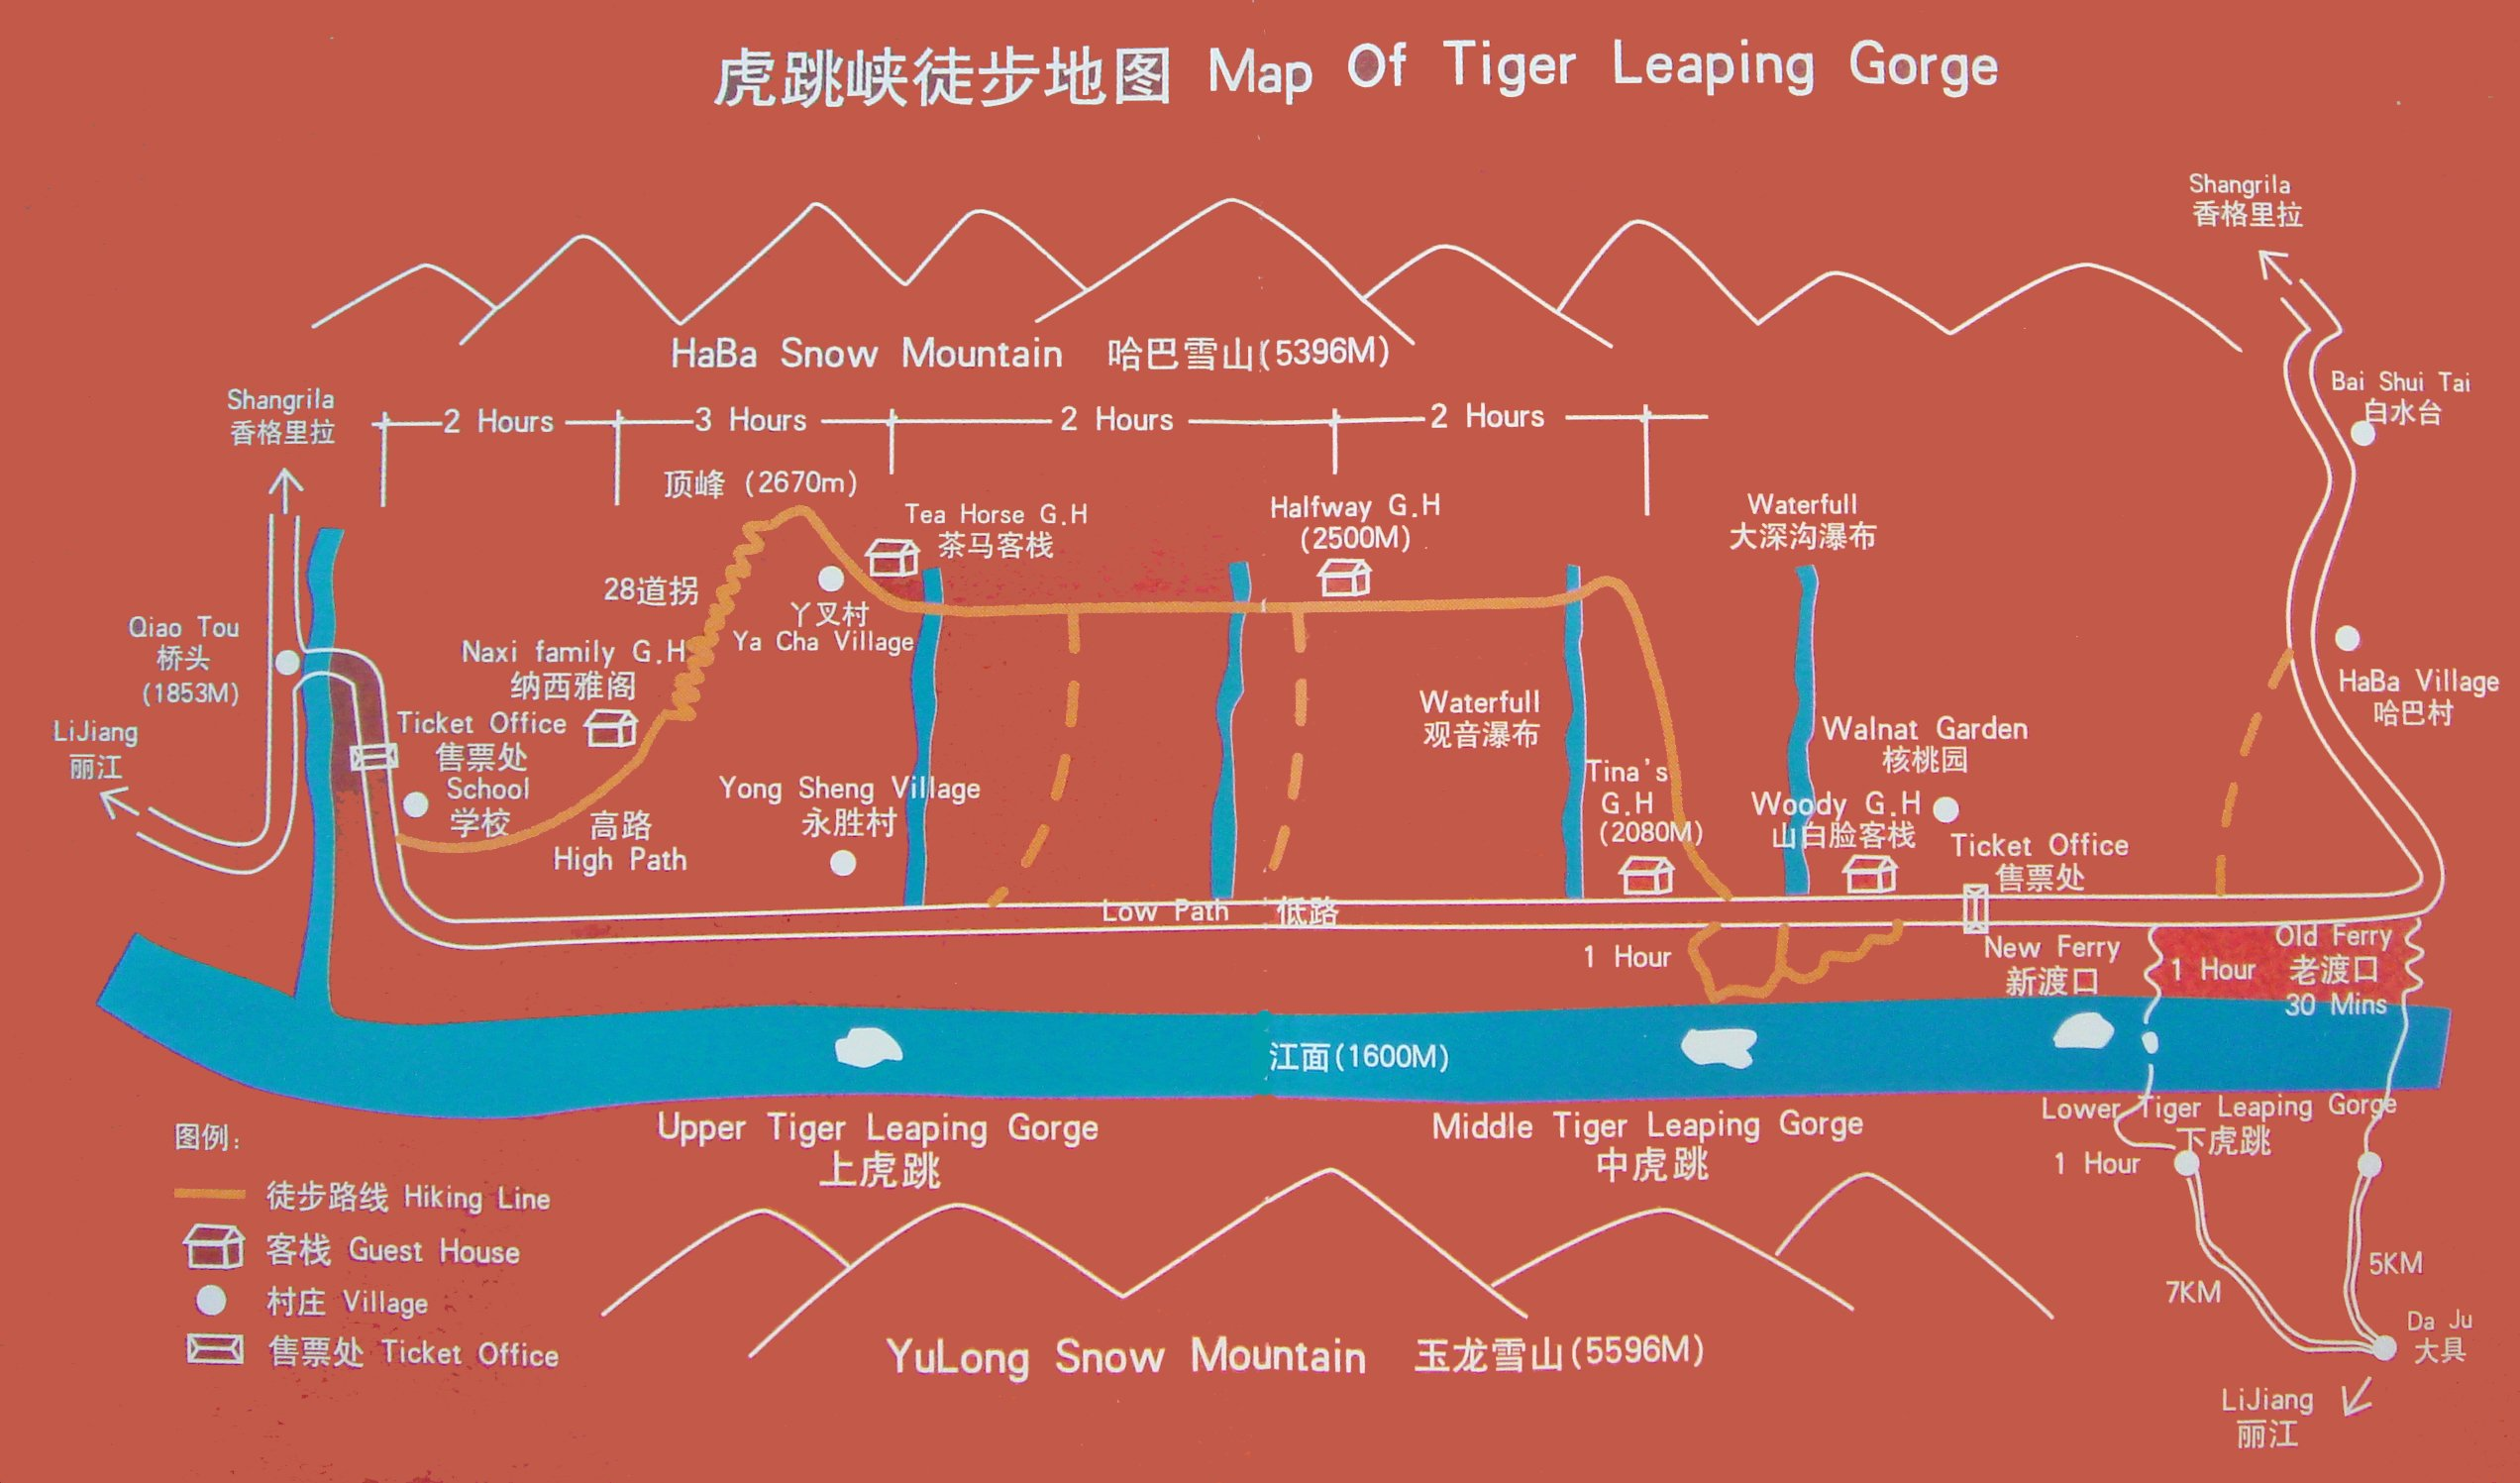 Lijiang Tiger Leaping Gorge Map